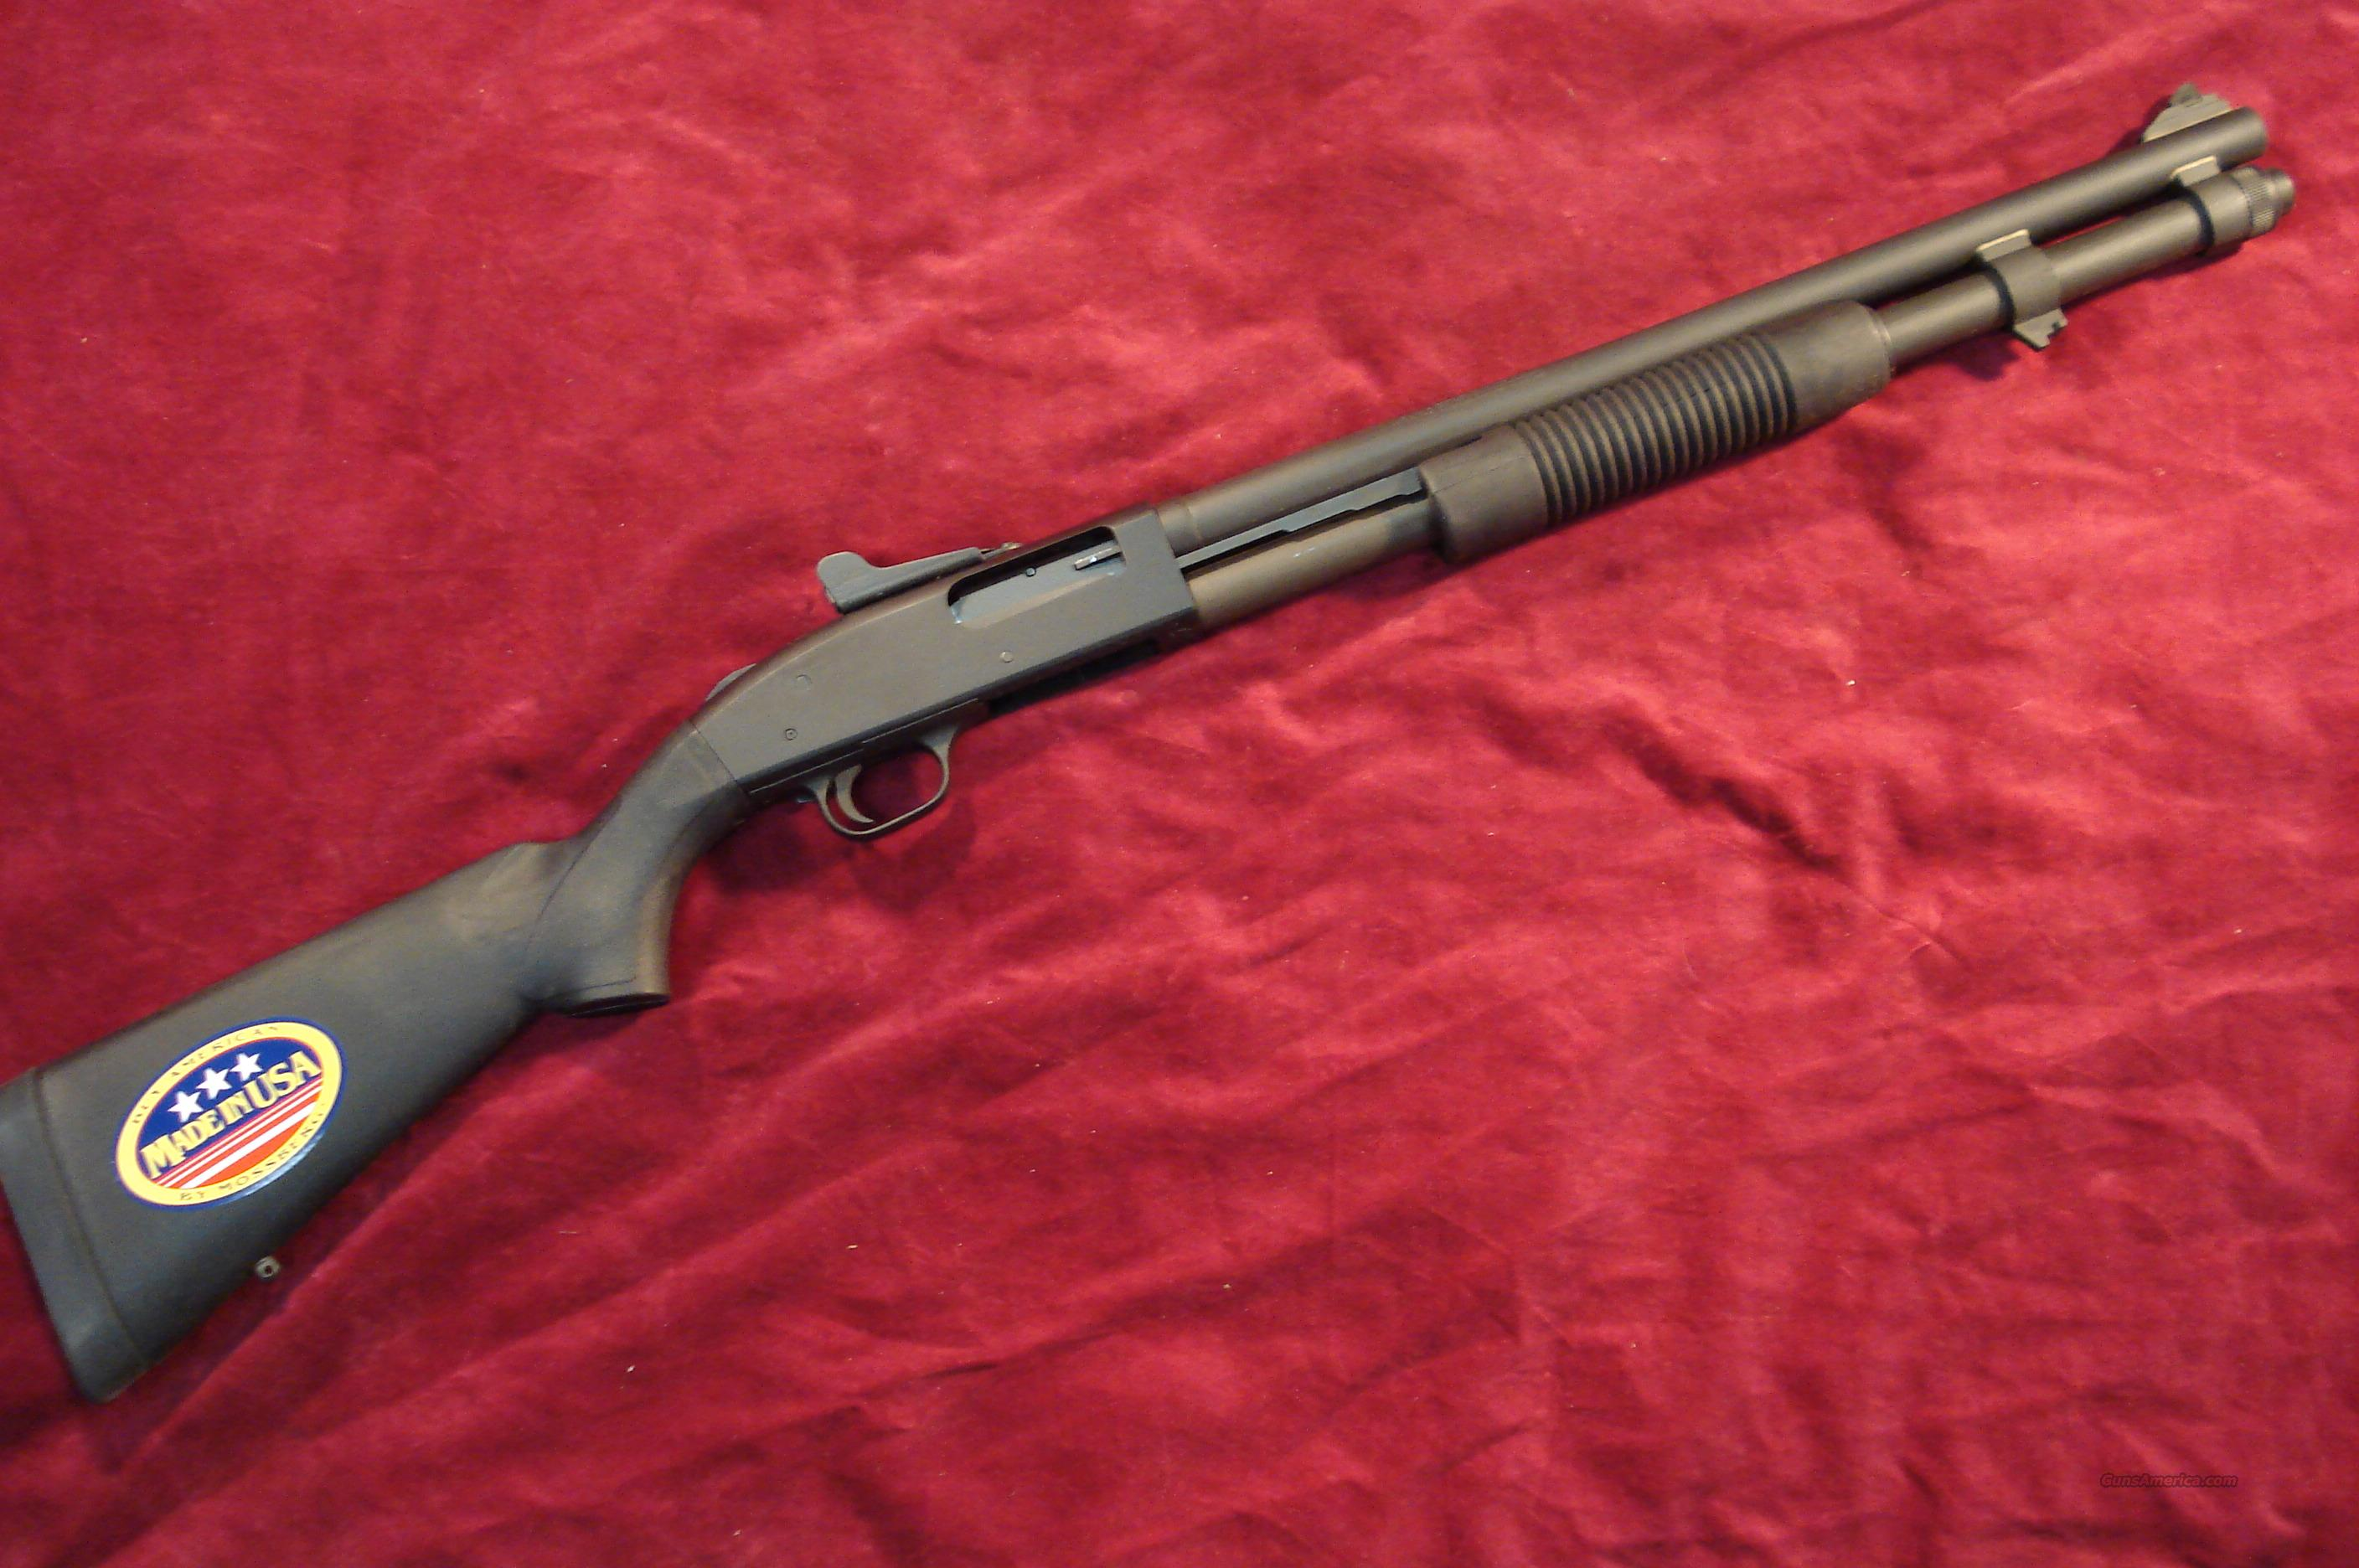 MOSSBERG 590A1 PERSUADER 12G PARKERIZED WITH GHOST RING SIGHTS NEW  Guns > Shotguns > Mossberg Shotguns > Pump > Tactical